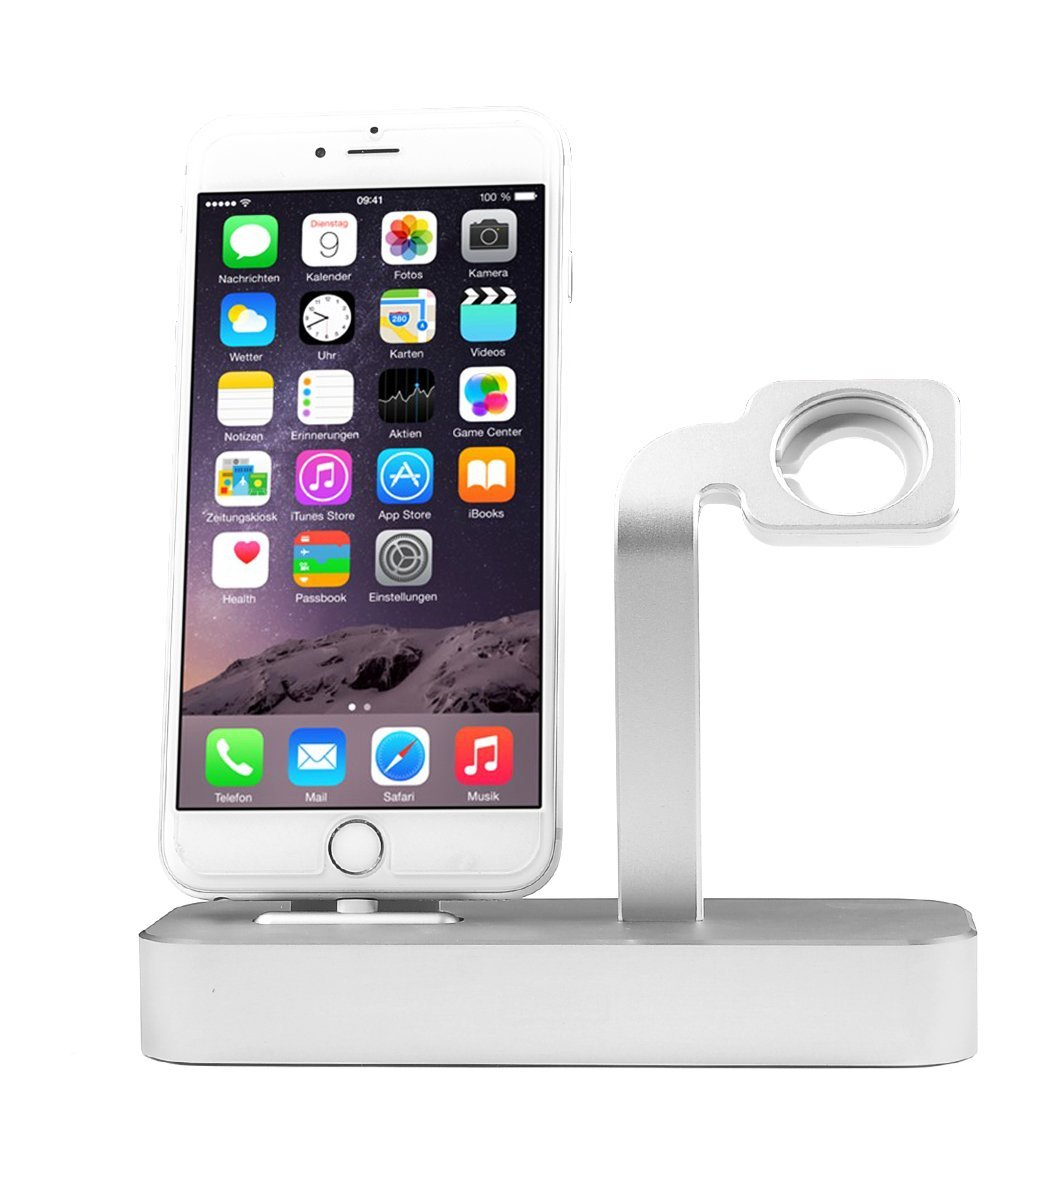 Apple Watch Stand, i-DRAWL 2 in 1 Premium Aluminum Charging Dock Station Stand Holder for Apple iWatch & iPhone(iPhone 5/5S/6/6 Plus, iWatch BASIC / SPORT / EDITION Model)